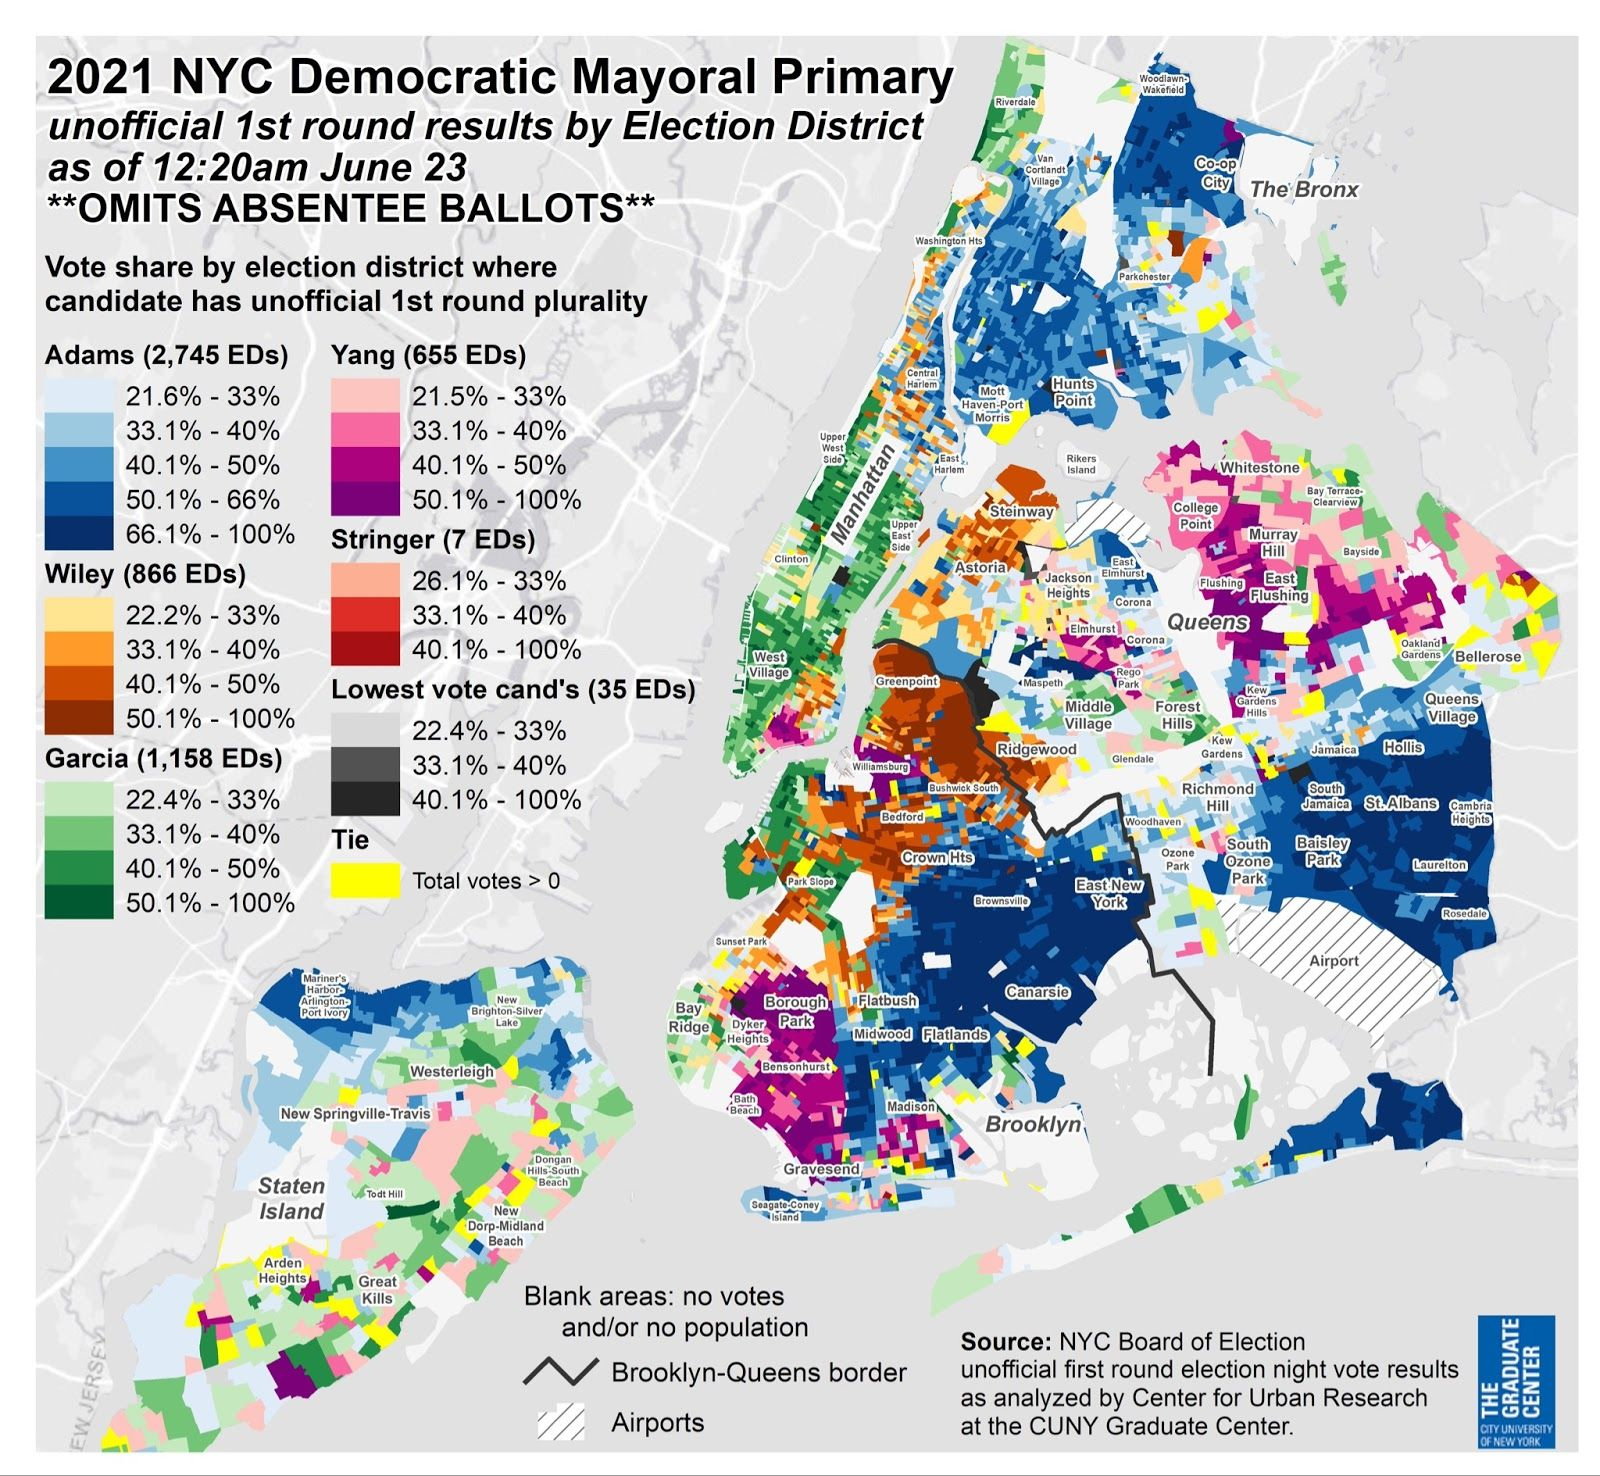 The Next Mayor Will Be From Brooklyn, And Other Takeaways From Tuesday's Primary